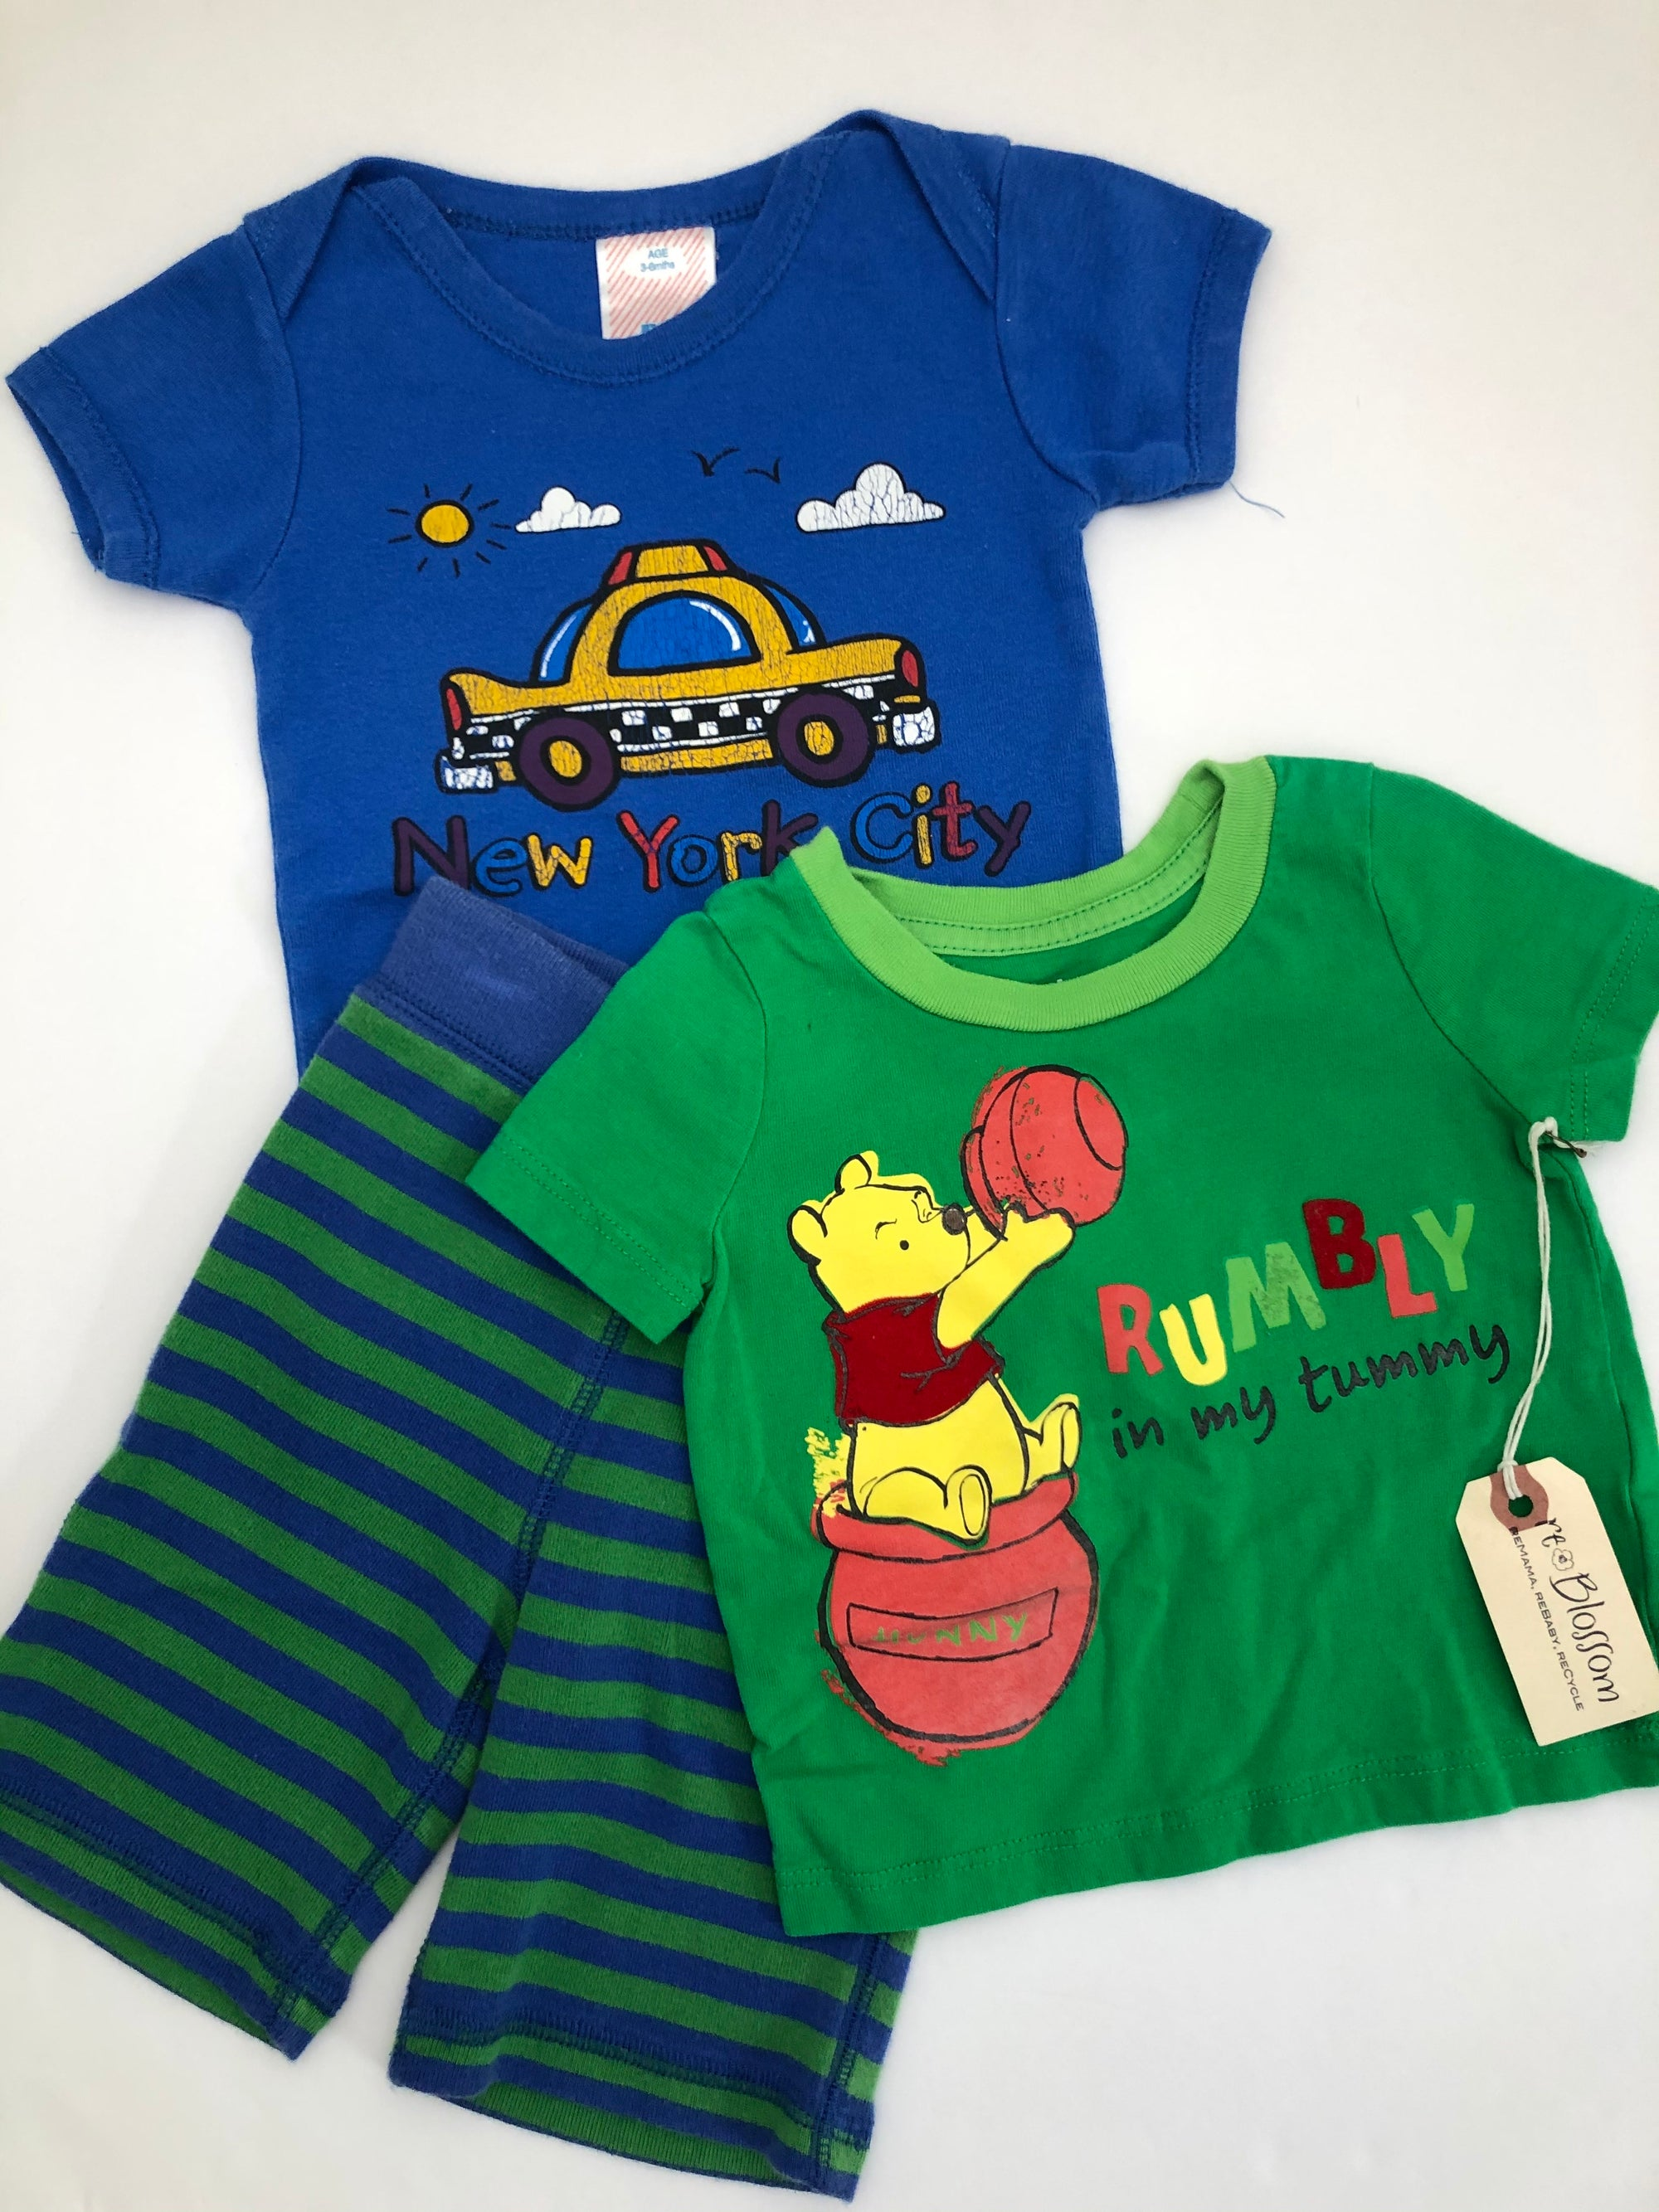 Resale 3-6 m Hanna Andersson Striped Pants Snowy, Winnie the Pooh Shirt, and New York City Bodysuit